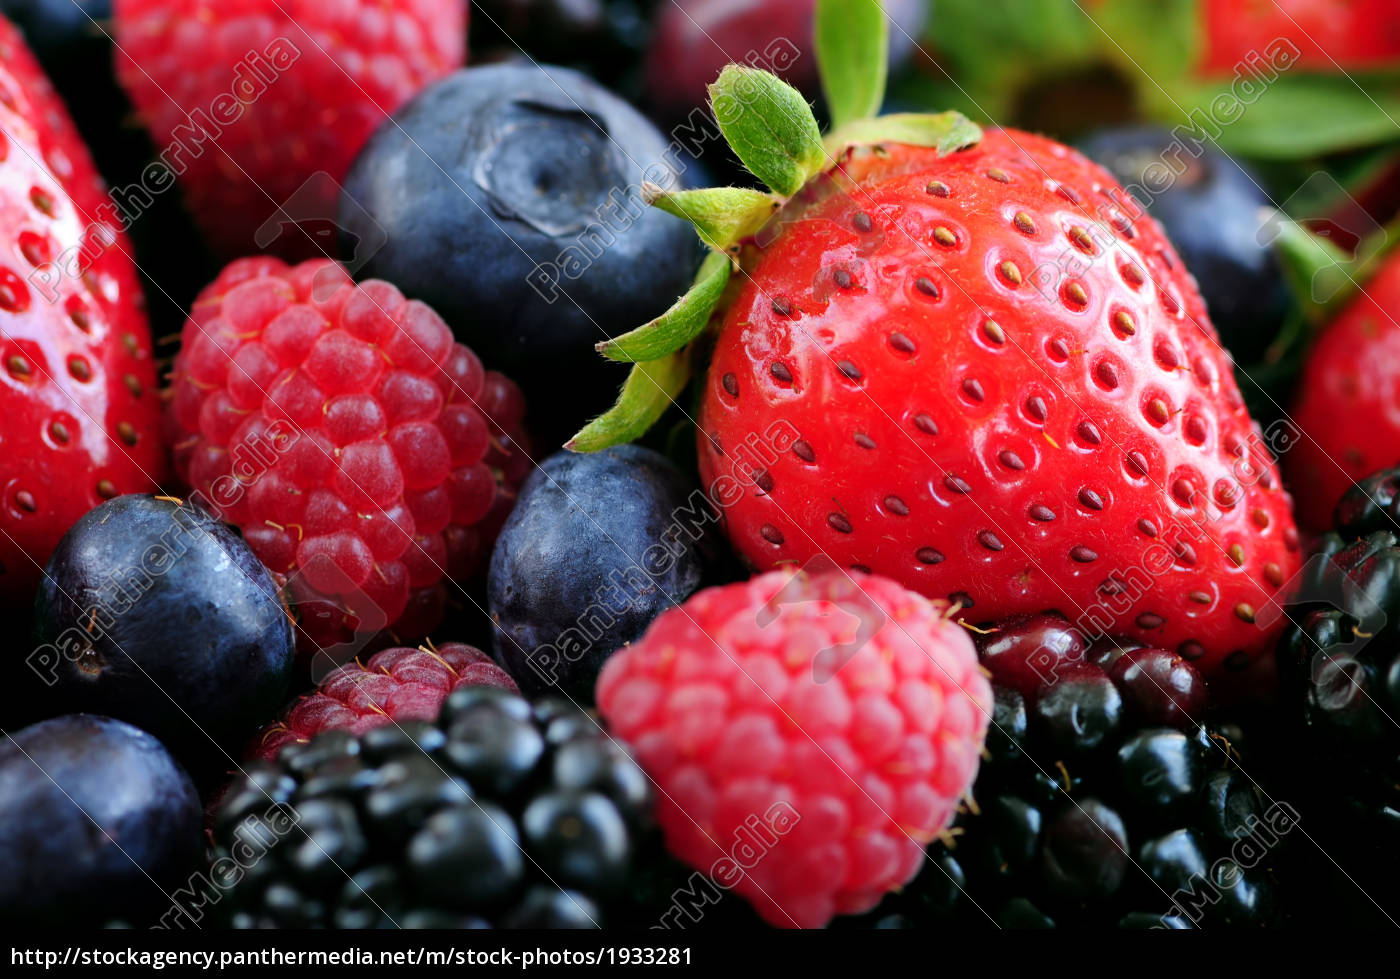 Royalty free image 1933281 - Assorted fresh berries